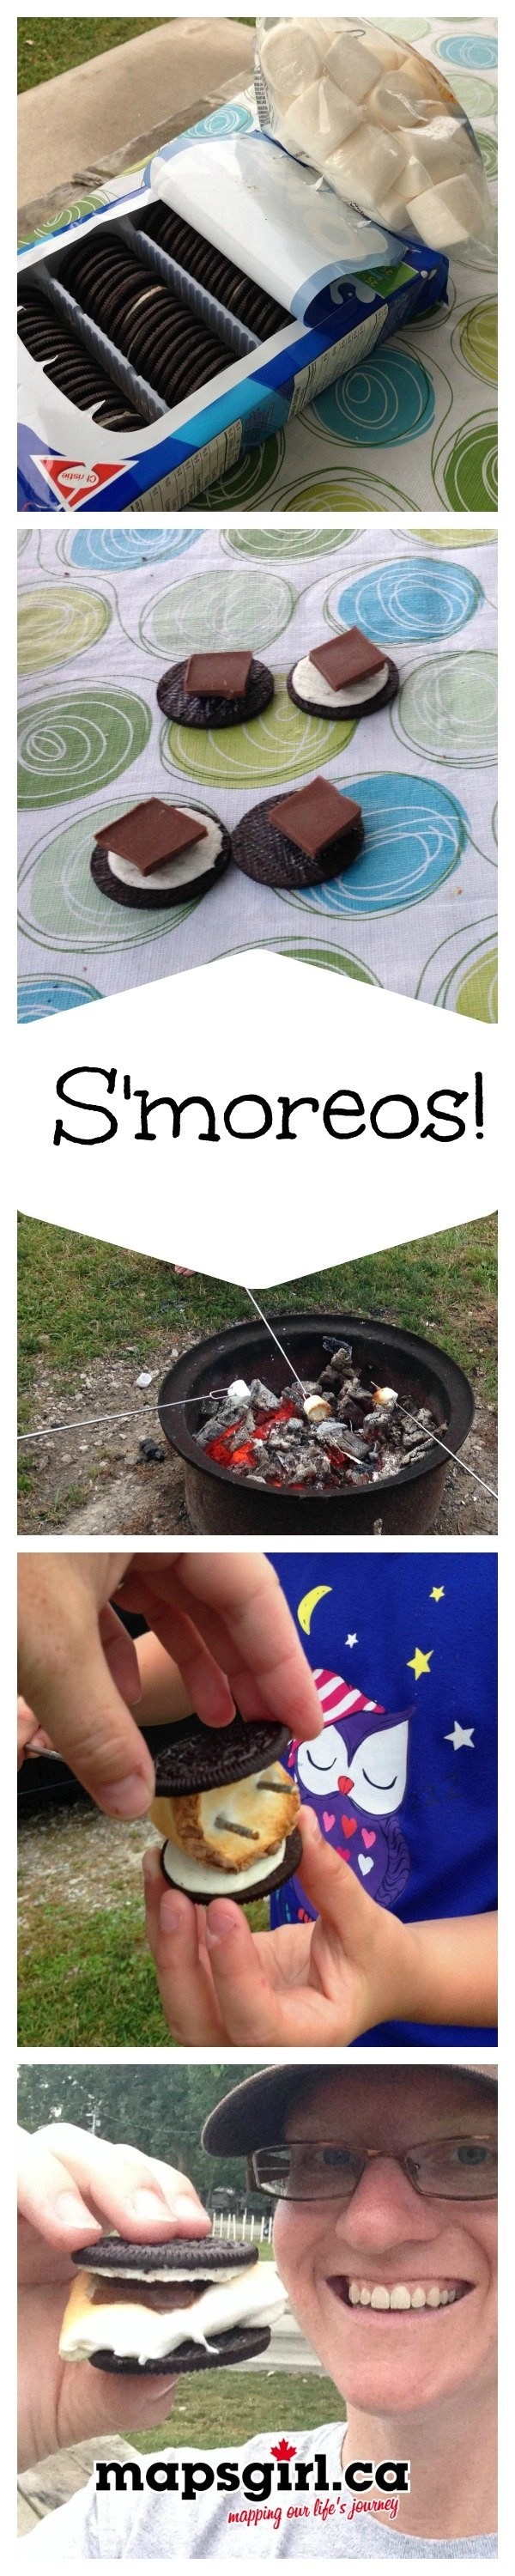 S'moreos! #WordlessWednesday